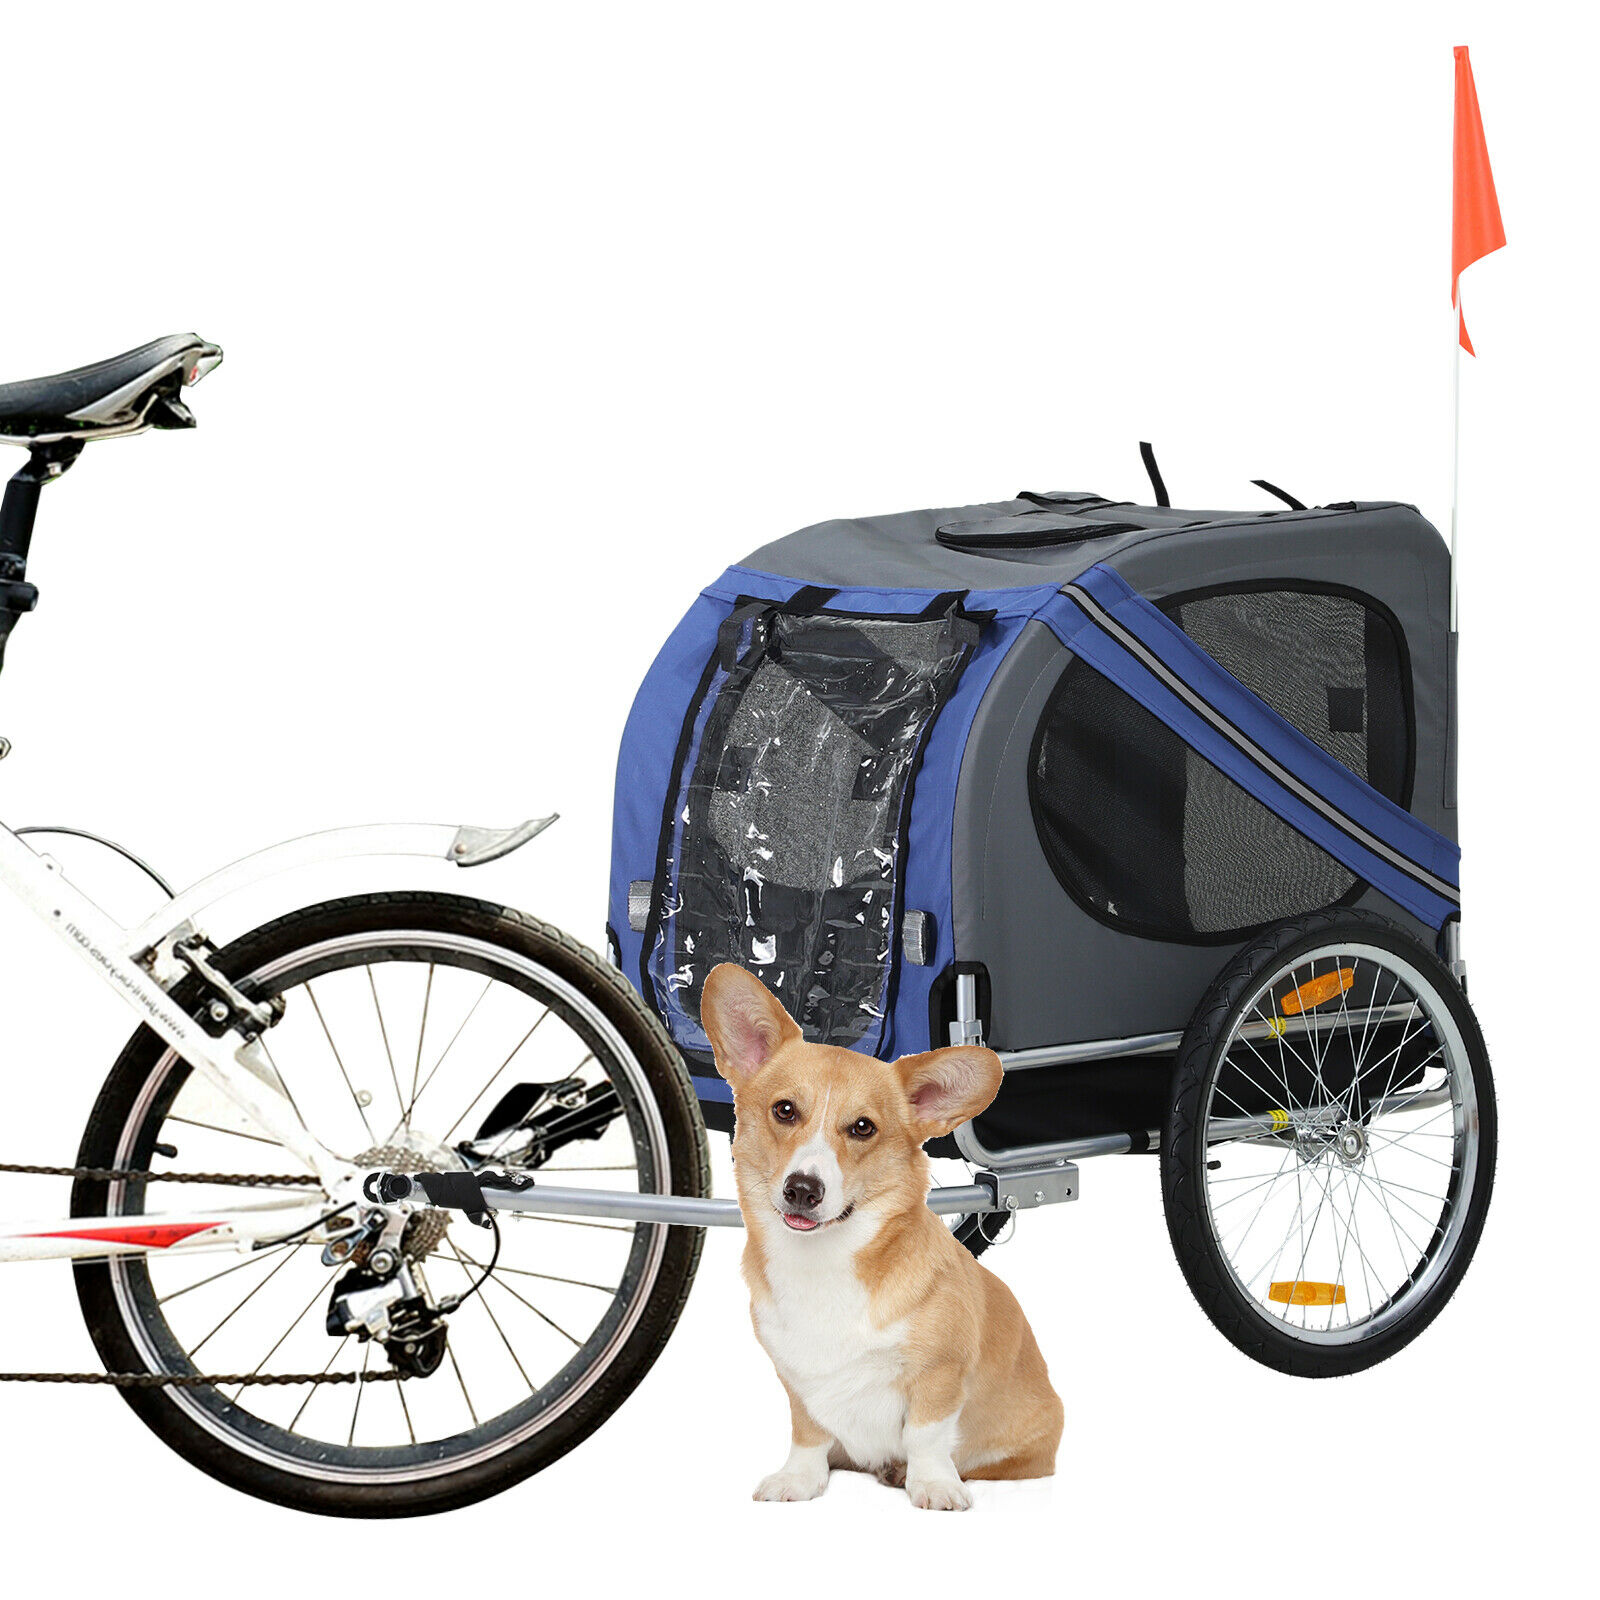 Aosom Elite Pet  Dog Bike Trailer Folding Bicycle Trailer Stroller Jogger bluee  online